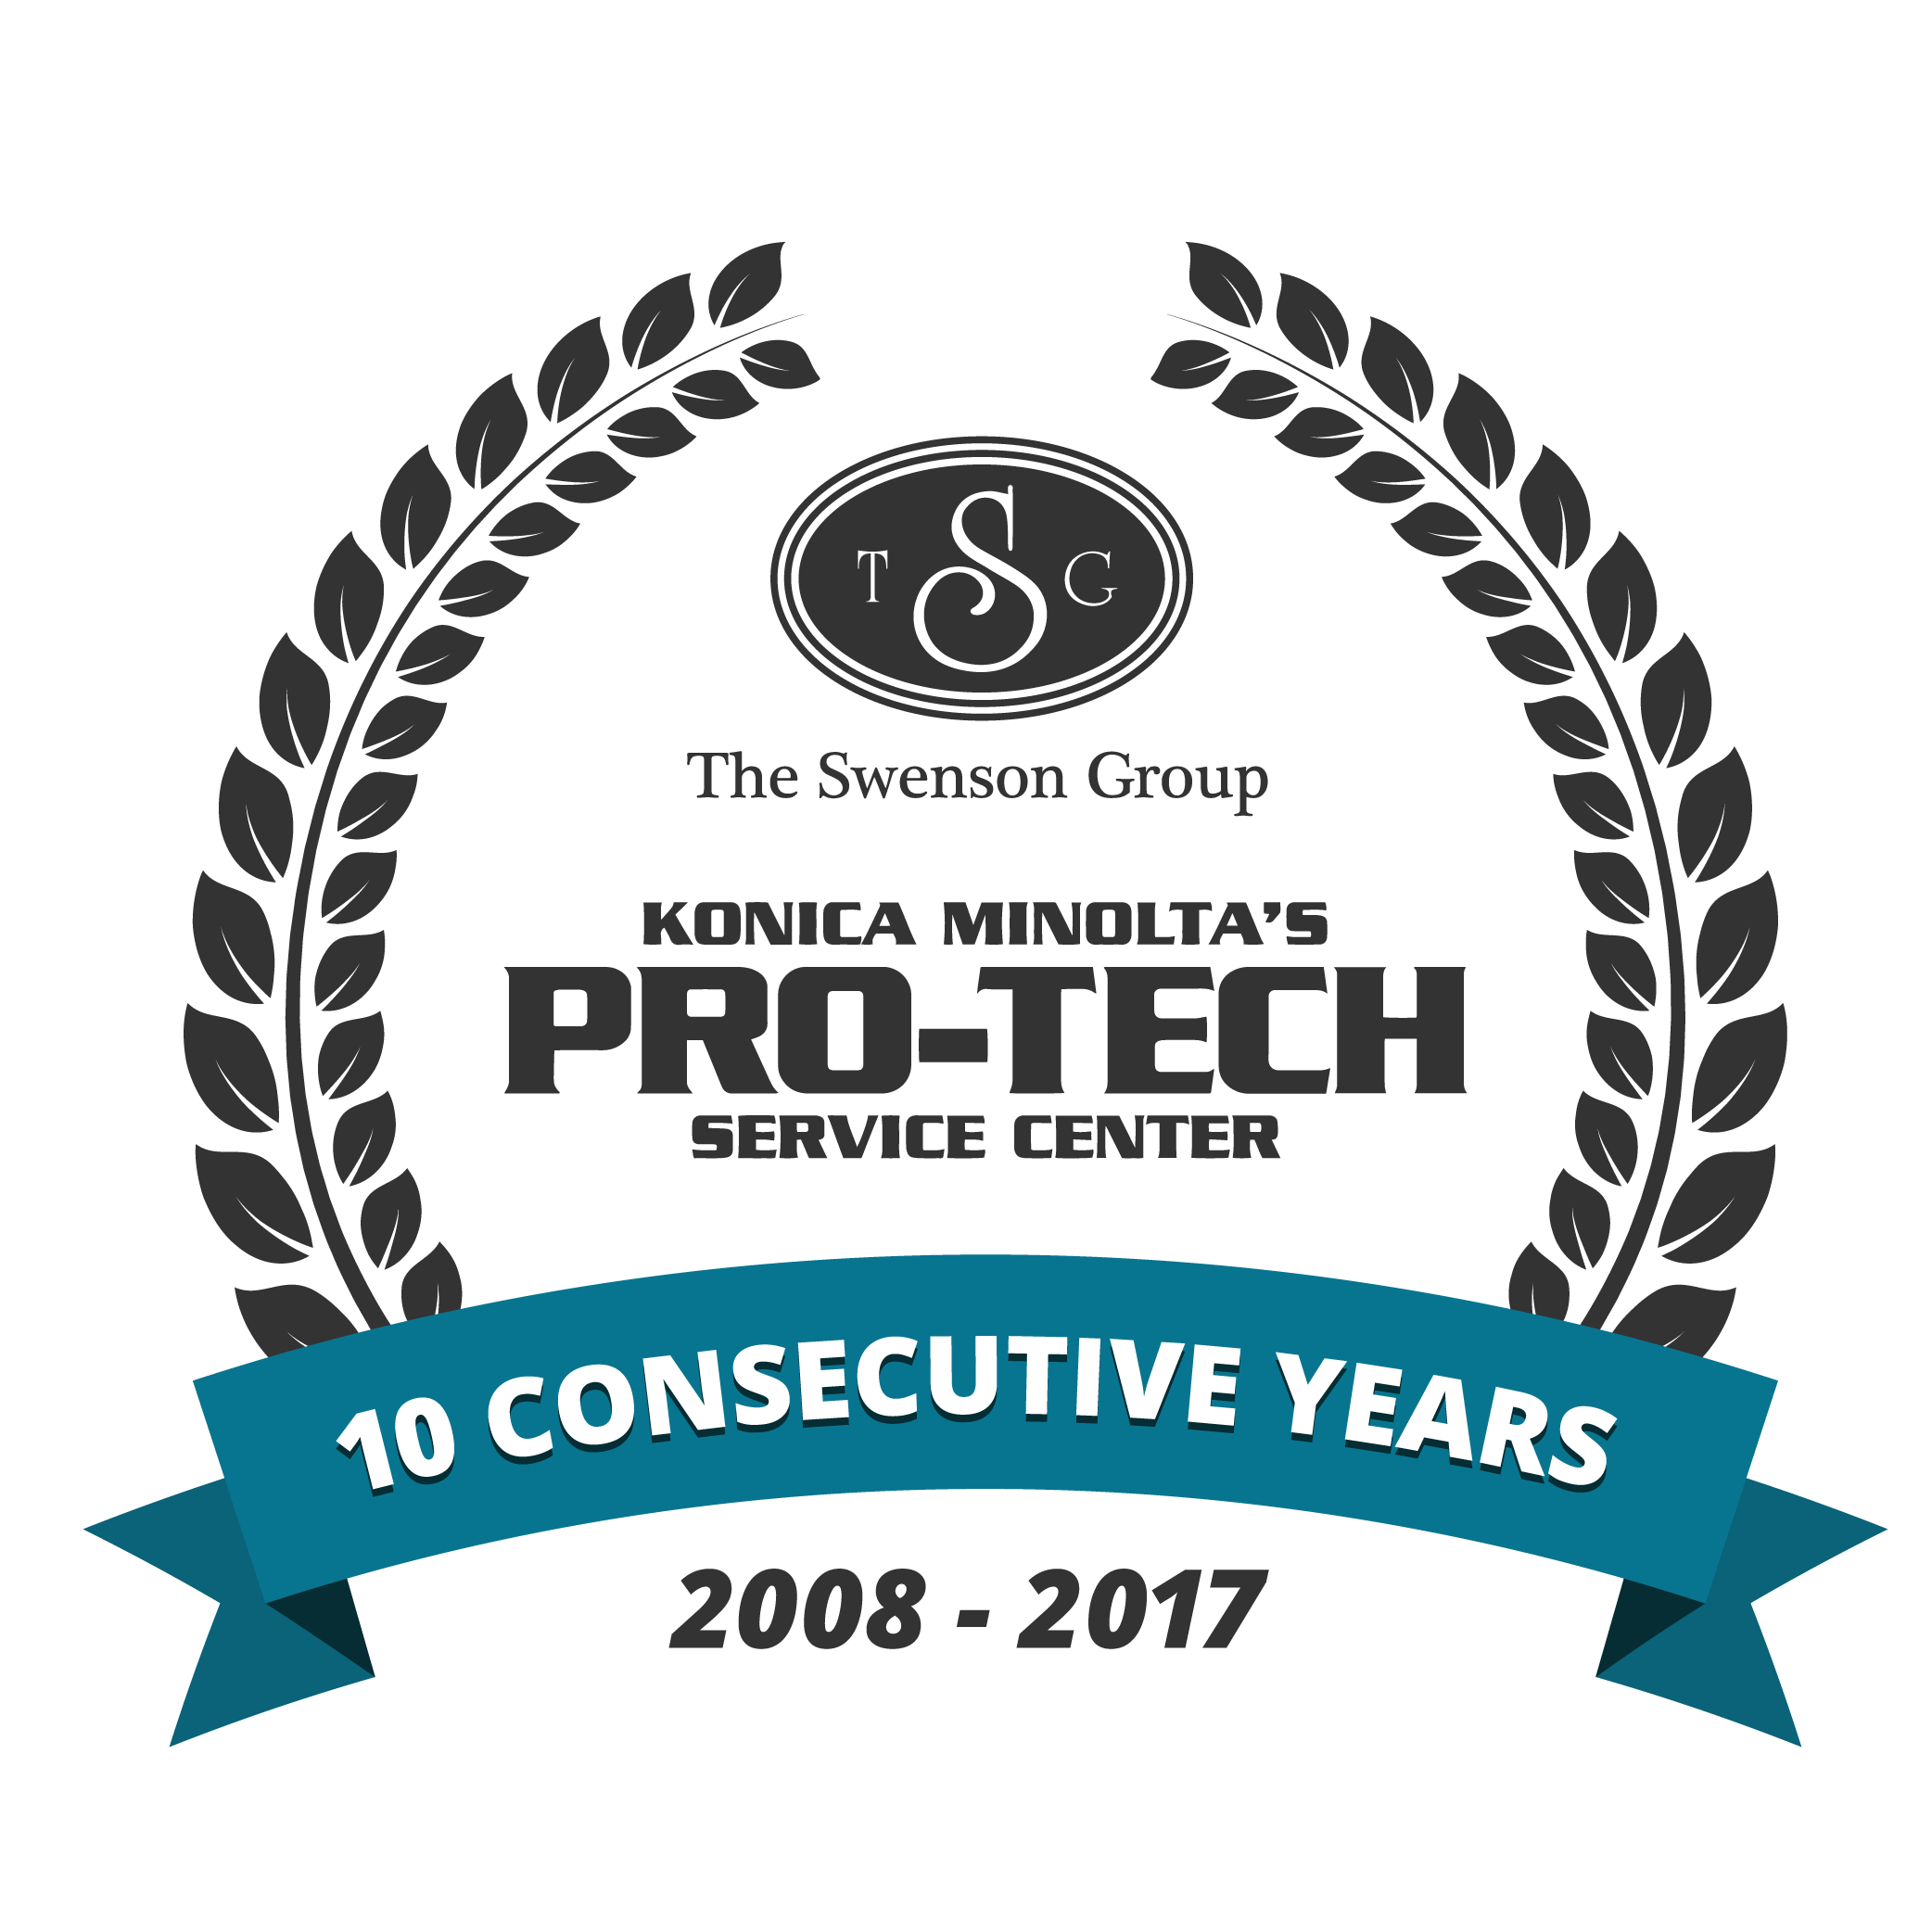 Konica Minolt's Pro-Tech Award Winner, The Swenson Group